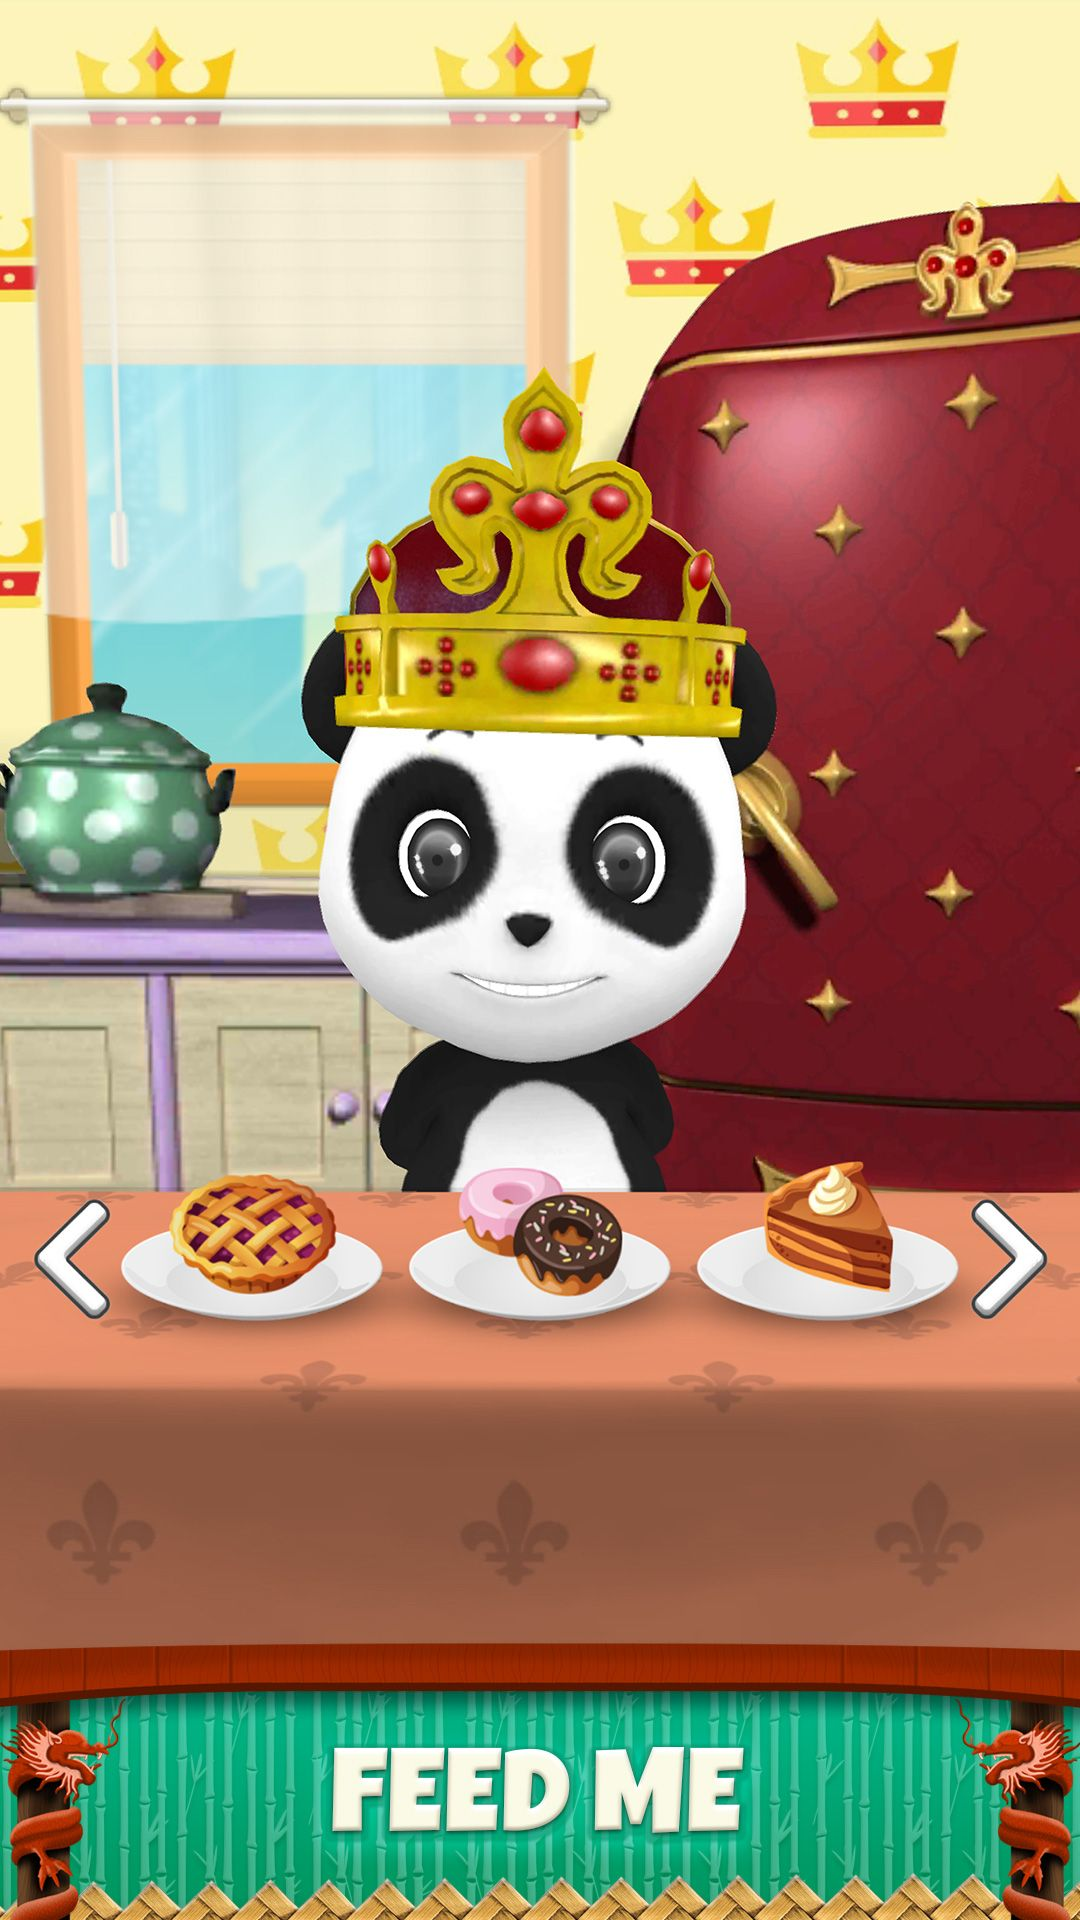 Image of: App Is My Talking Panda The Best Virtual Pet Game So Far Reviews Indicate So Itunes Apple Pin By Fun Apps And Games On Virtual Pet Games Virtual Pet Games App